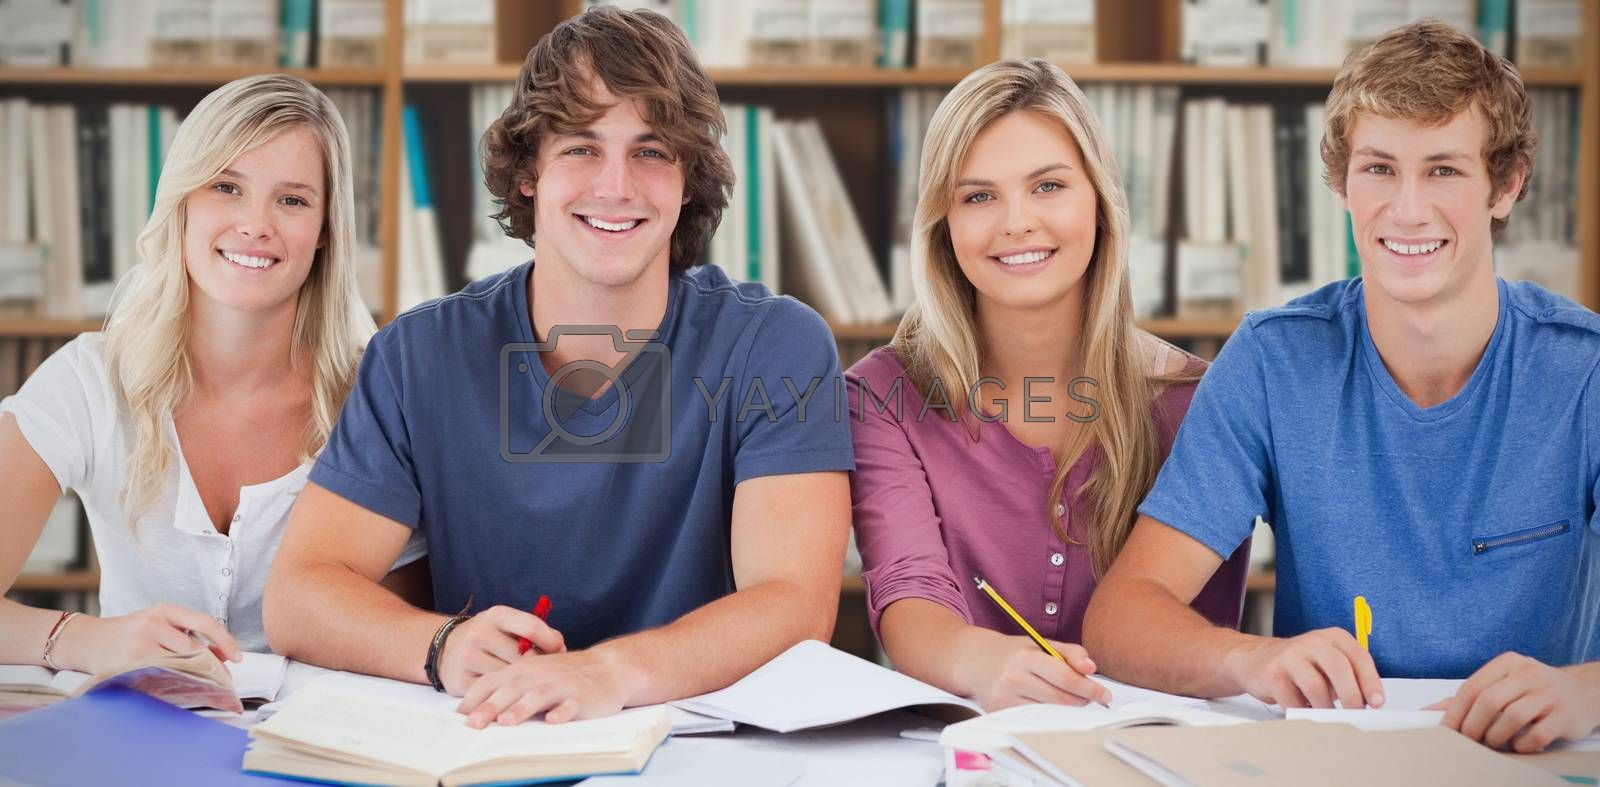 Composite image of four students looking at the camera by Wavebreakmedia